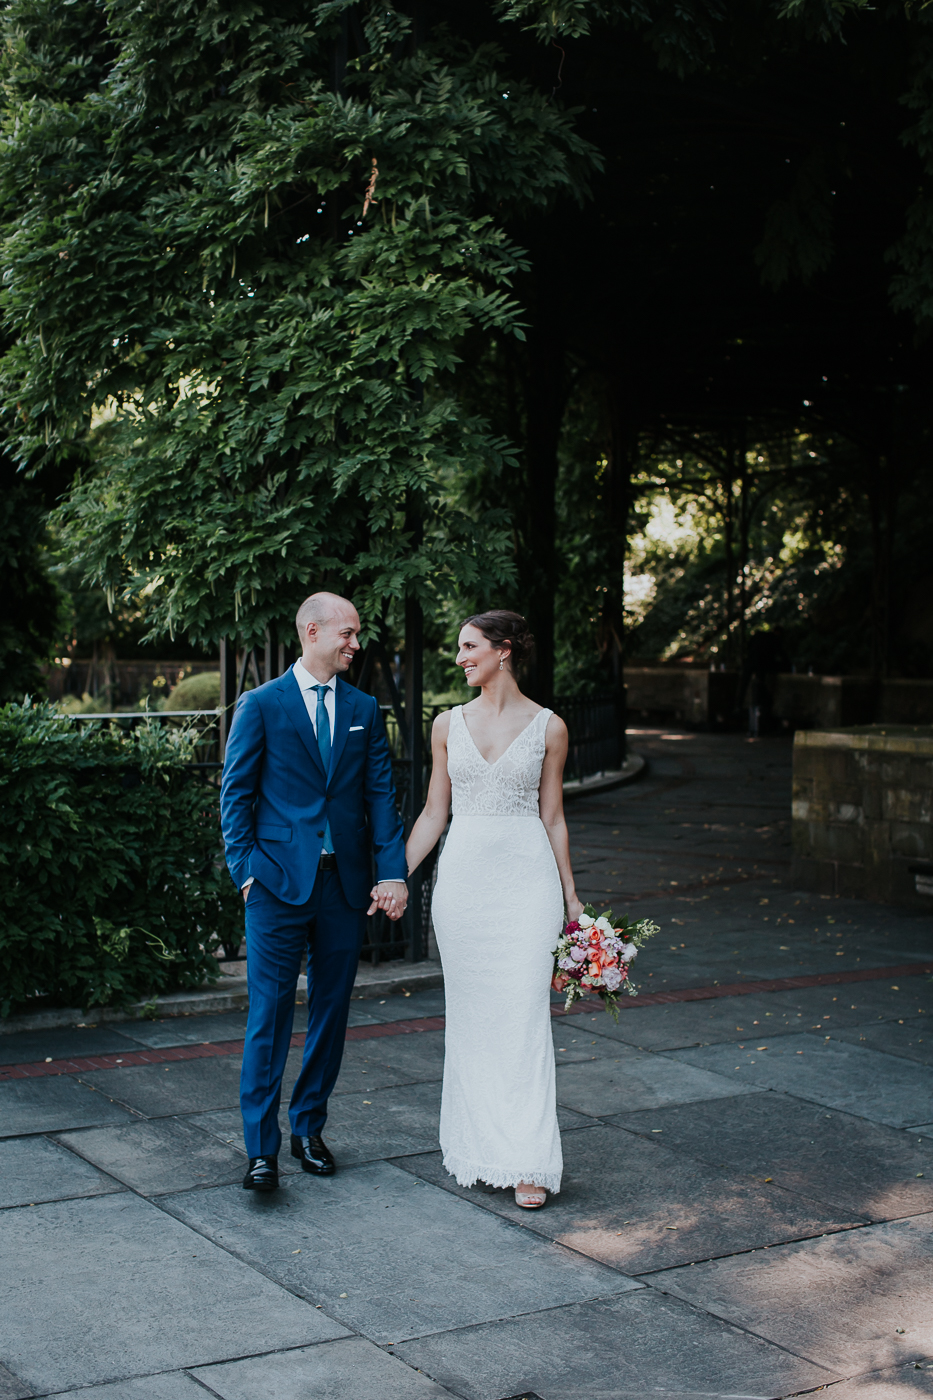 NYC-Central-Park-Conservatory-Garden-Intimate-Elopement-Documentary-Wedding-Photographer-36.jpg